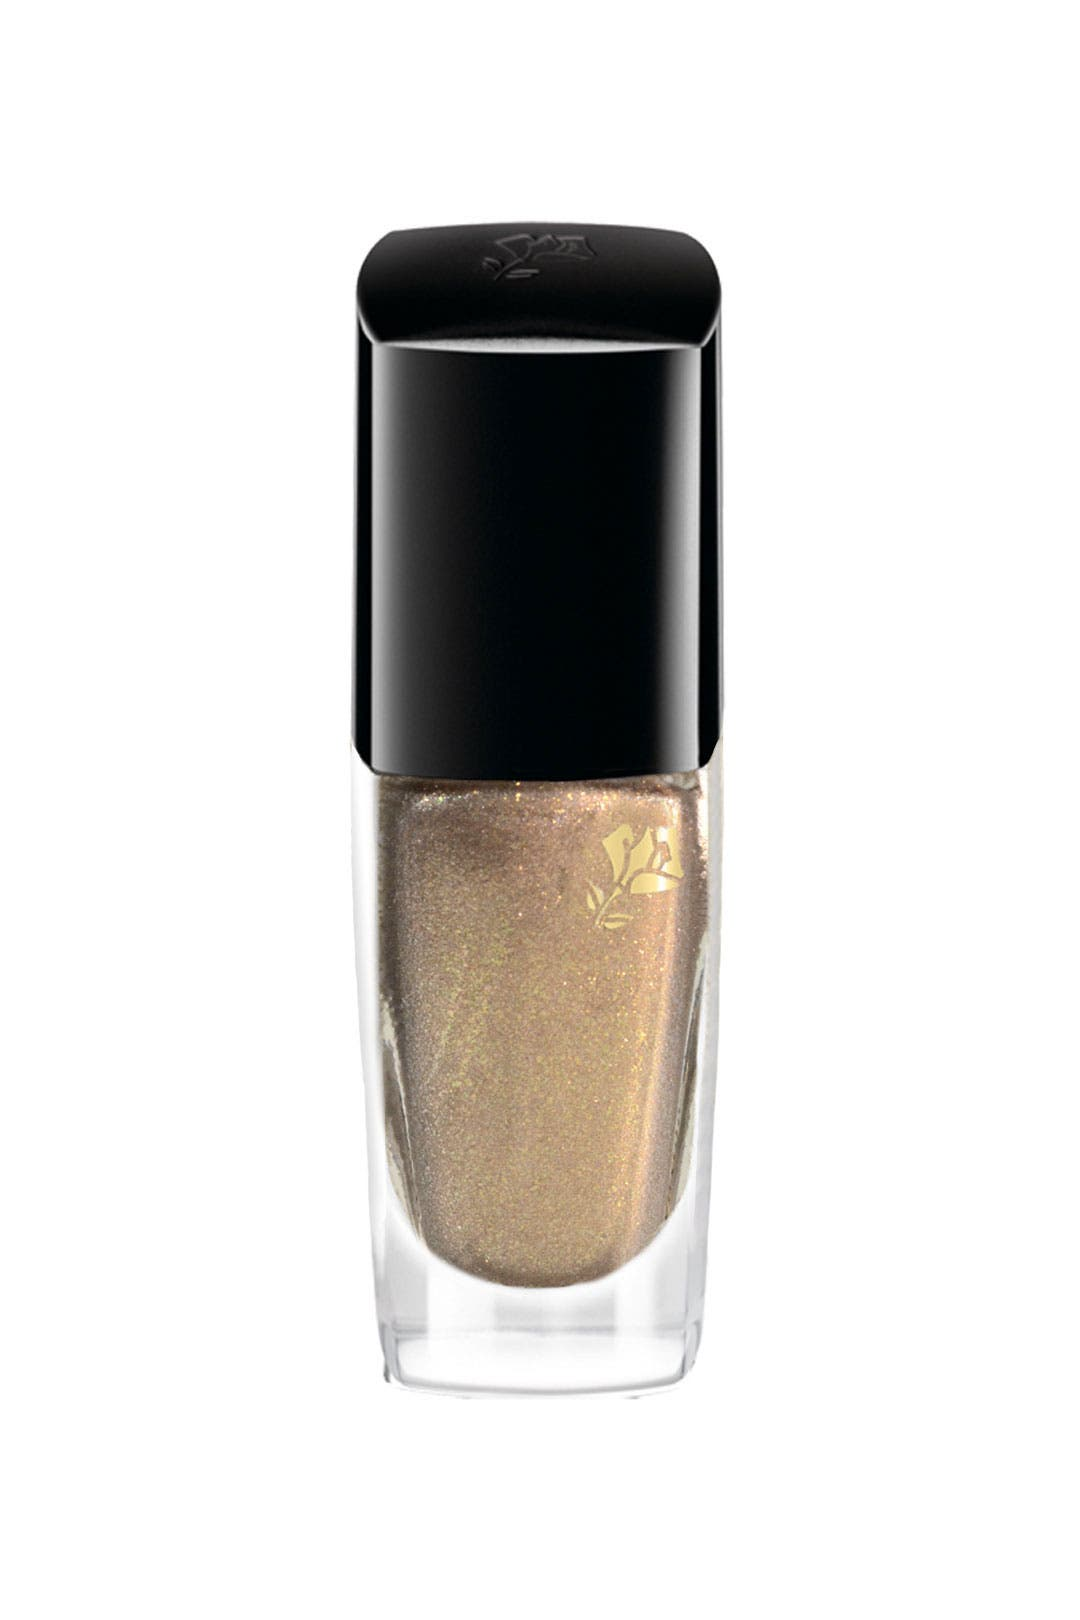 Ginger Ritztini Vernis In Love Nail Polish by LANCÔME